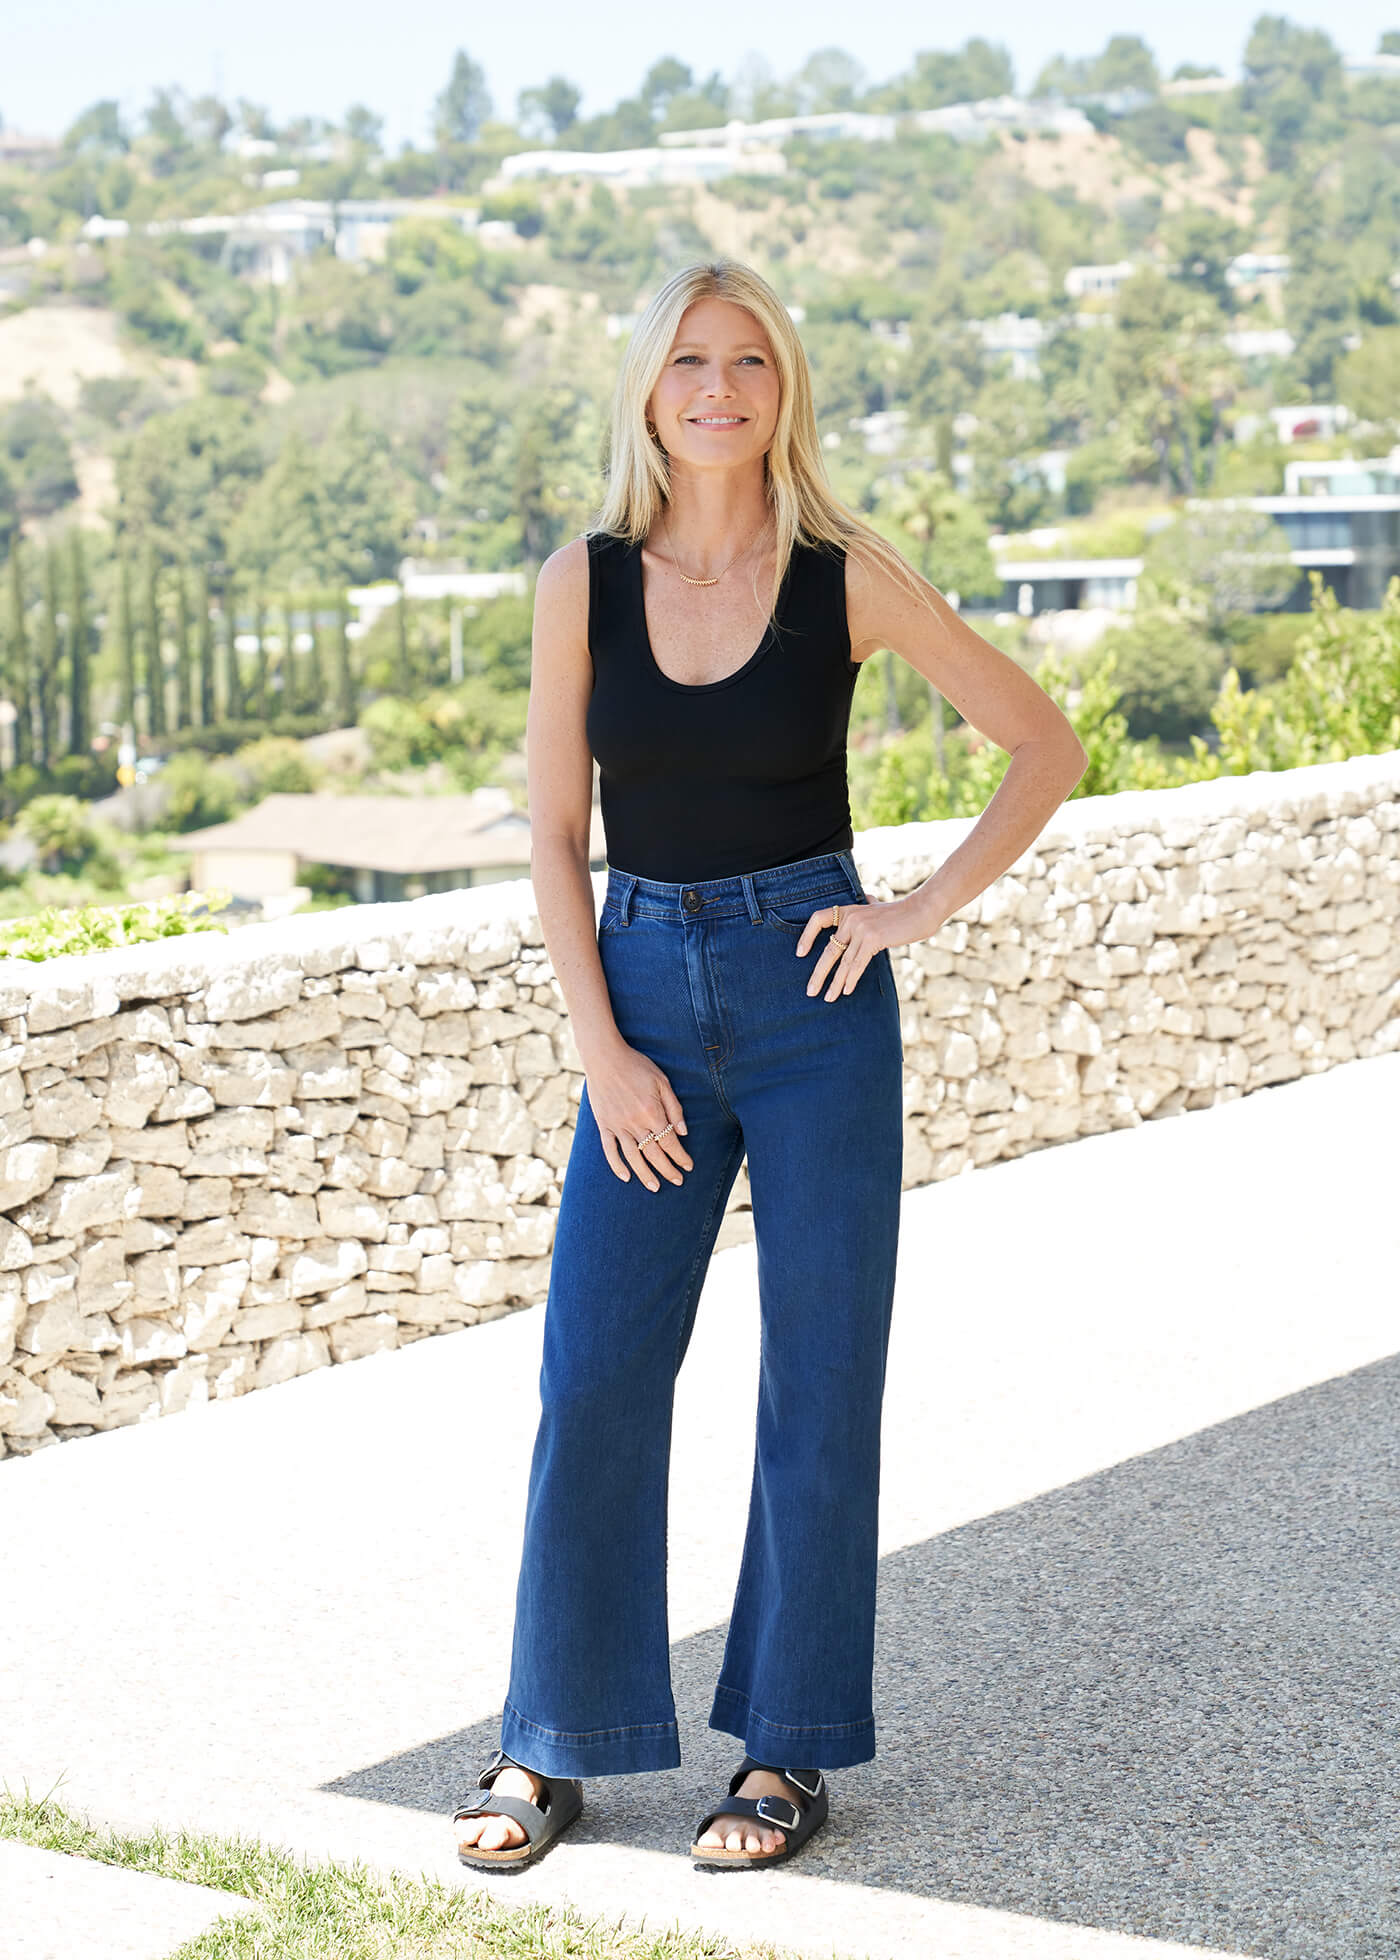 Gwyneth Paltrow with the Mel Jeans